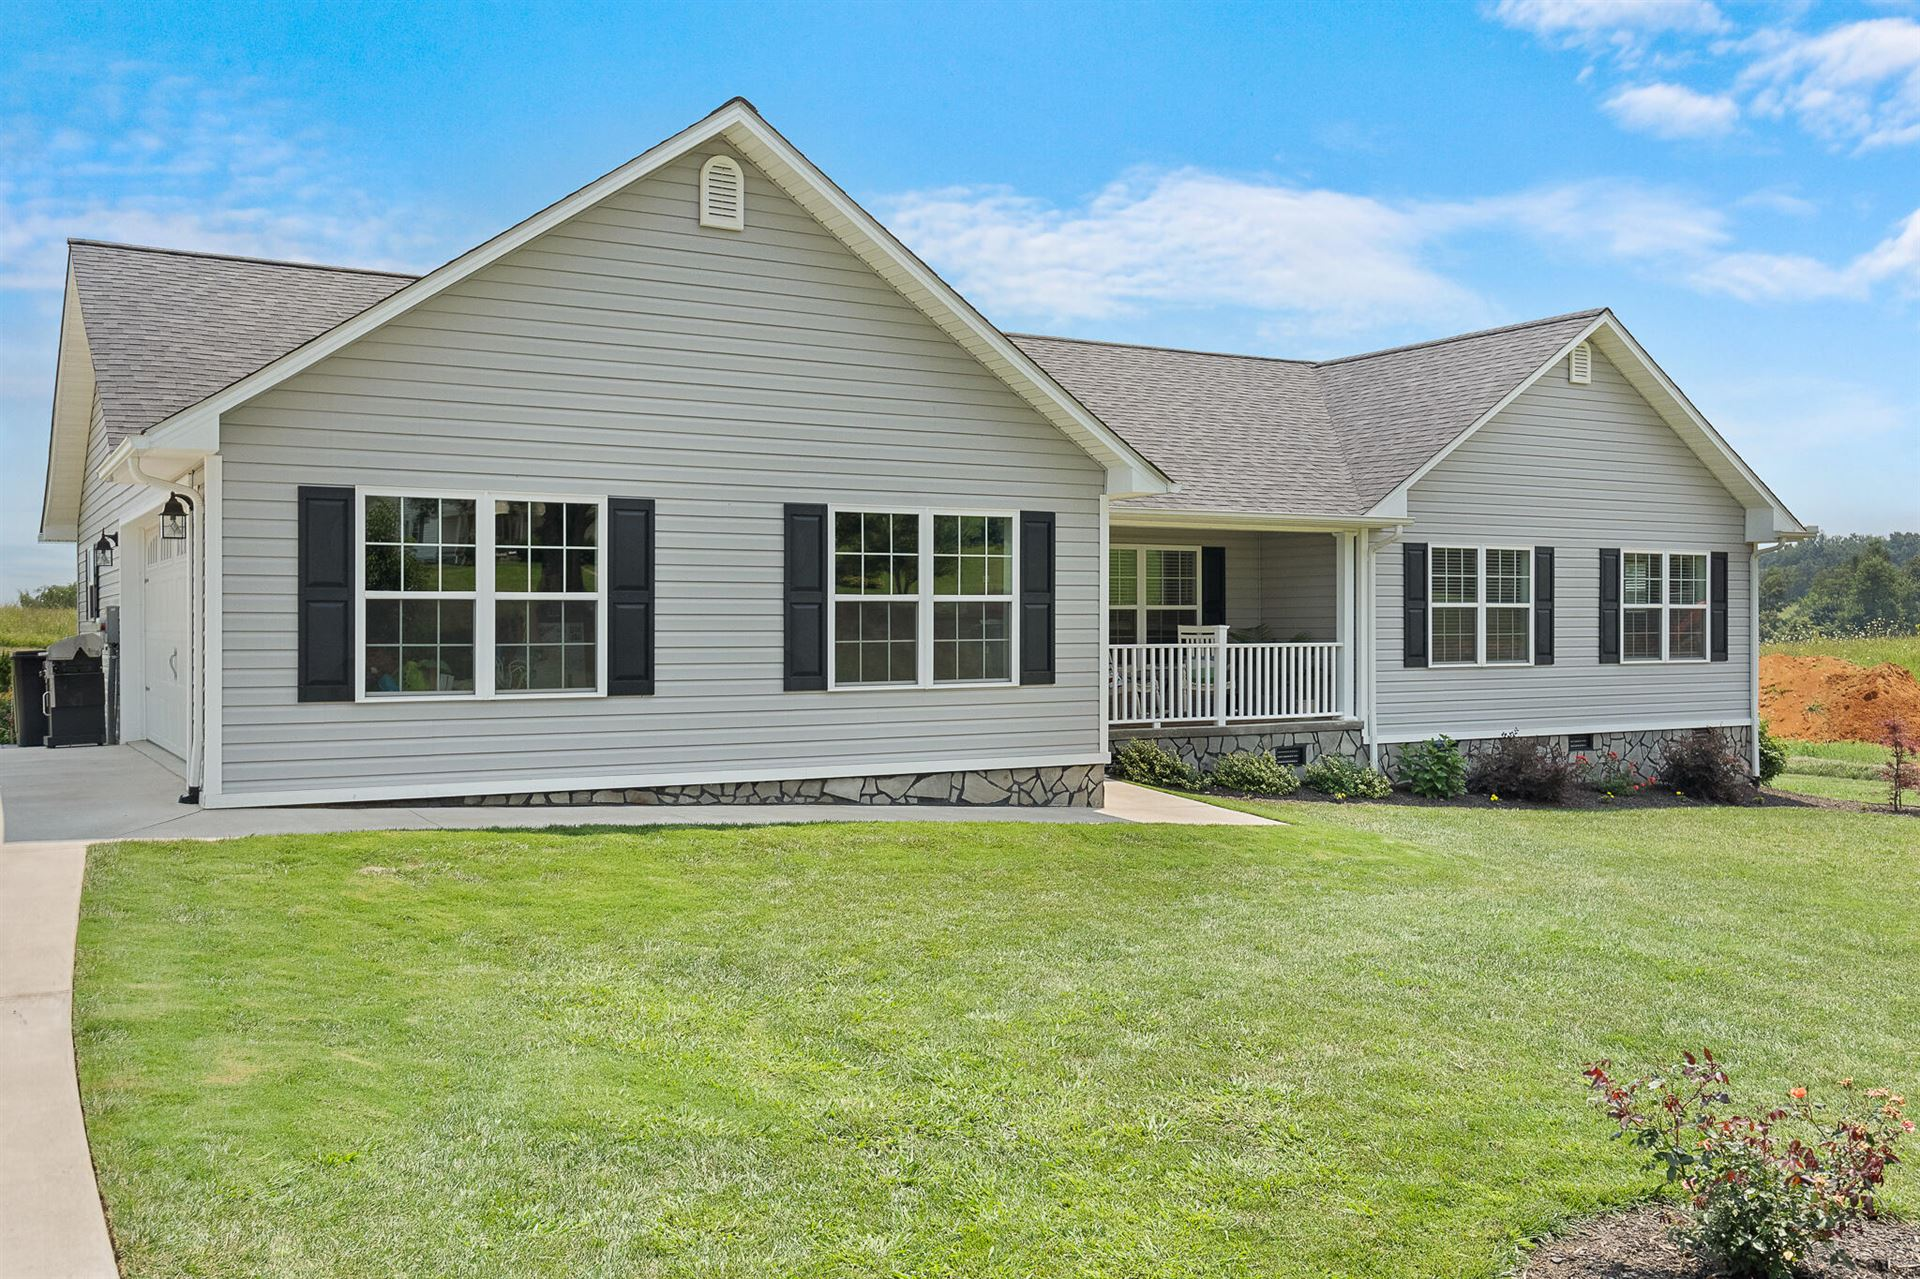 Photo of 2086 Old Stage Road, Greeneville, TN 37745 (MLS # 9926033)